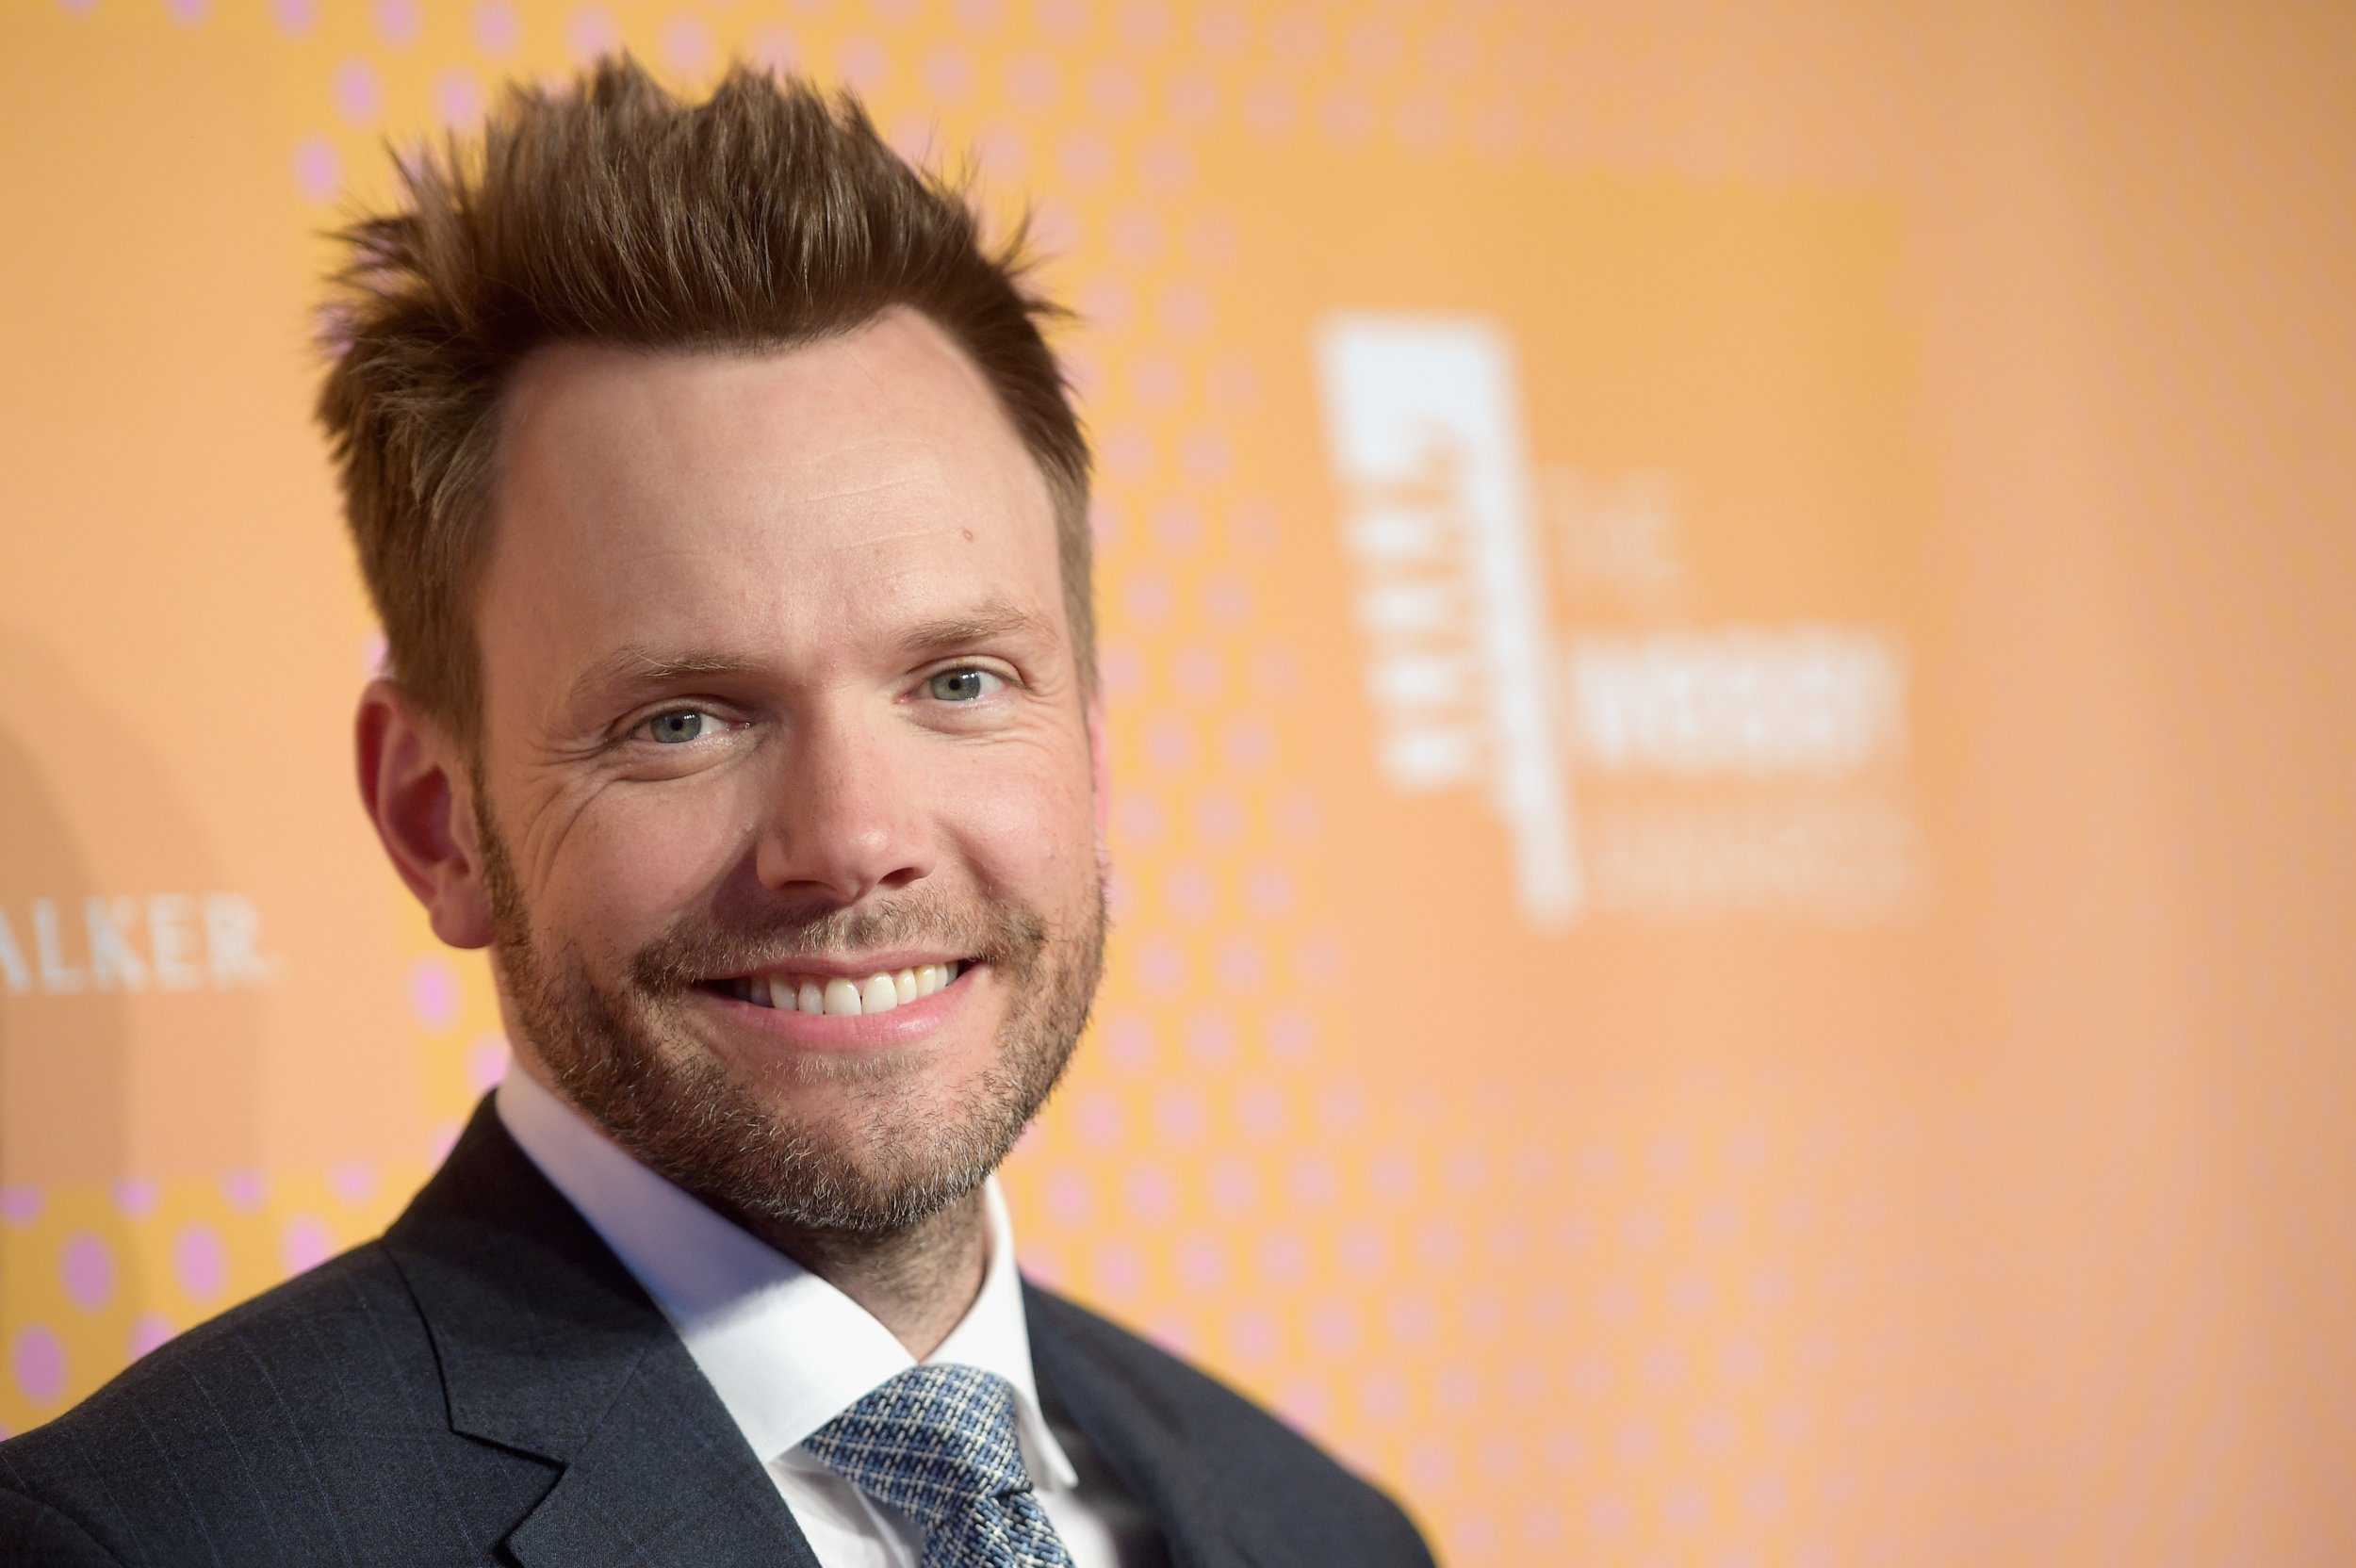 Joel McHale can make fun of the Kardashians and Jenners as much as he wants (if he wants) on new Netflix show